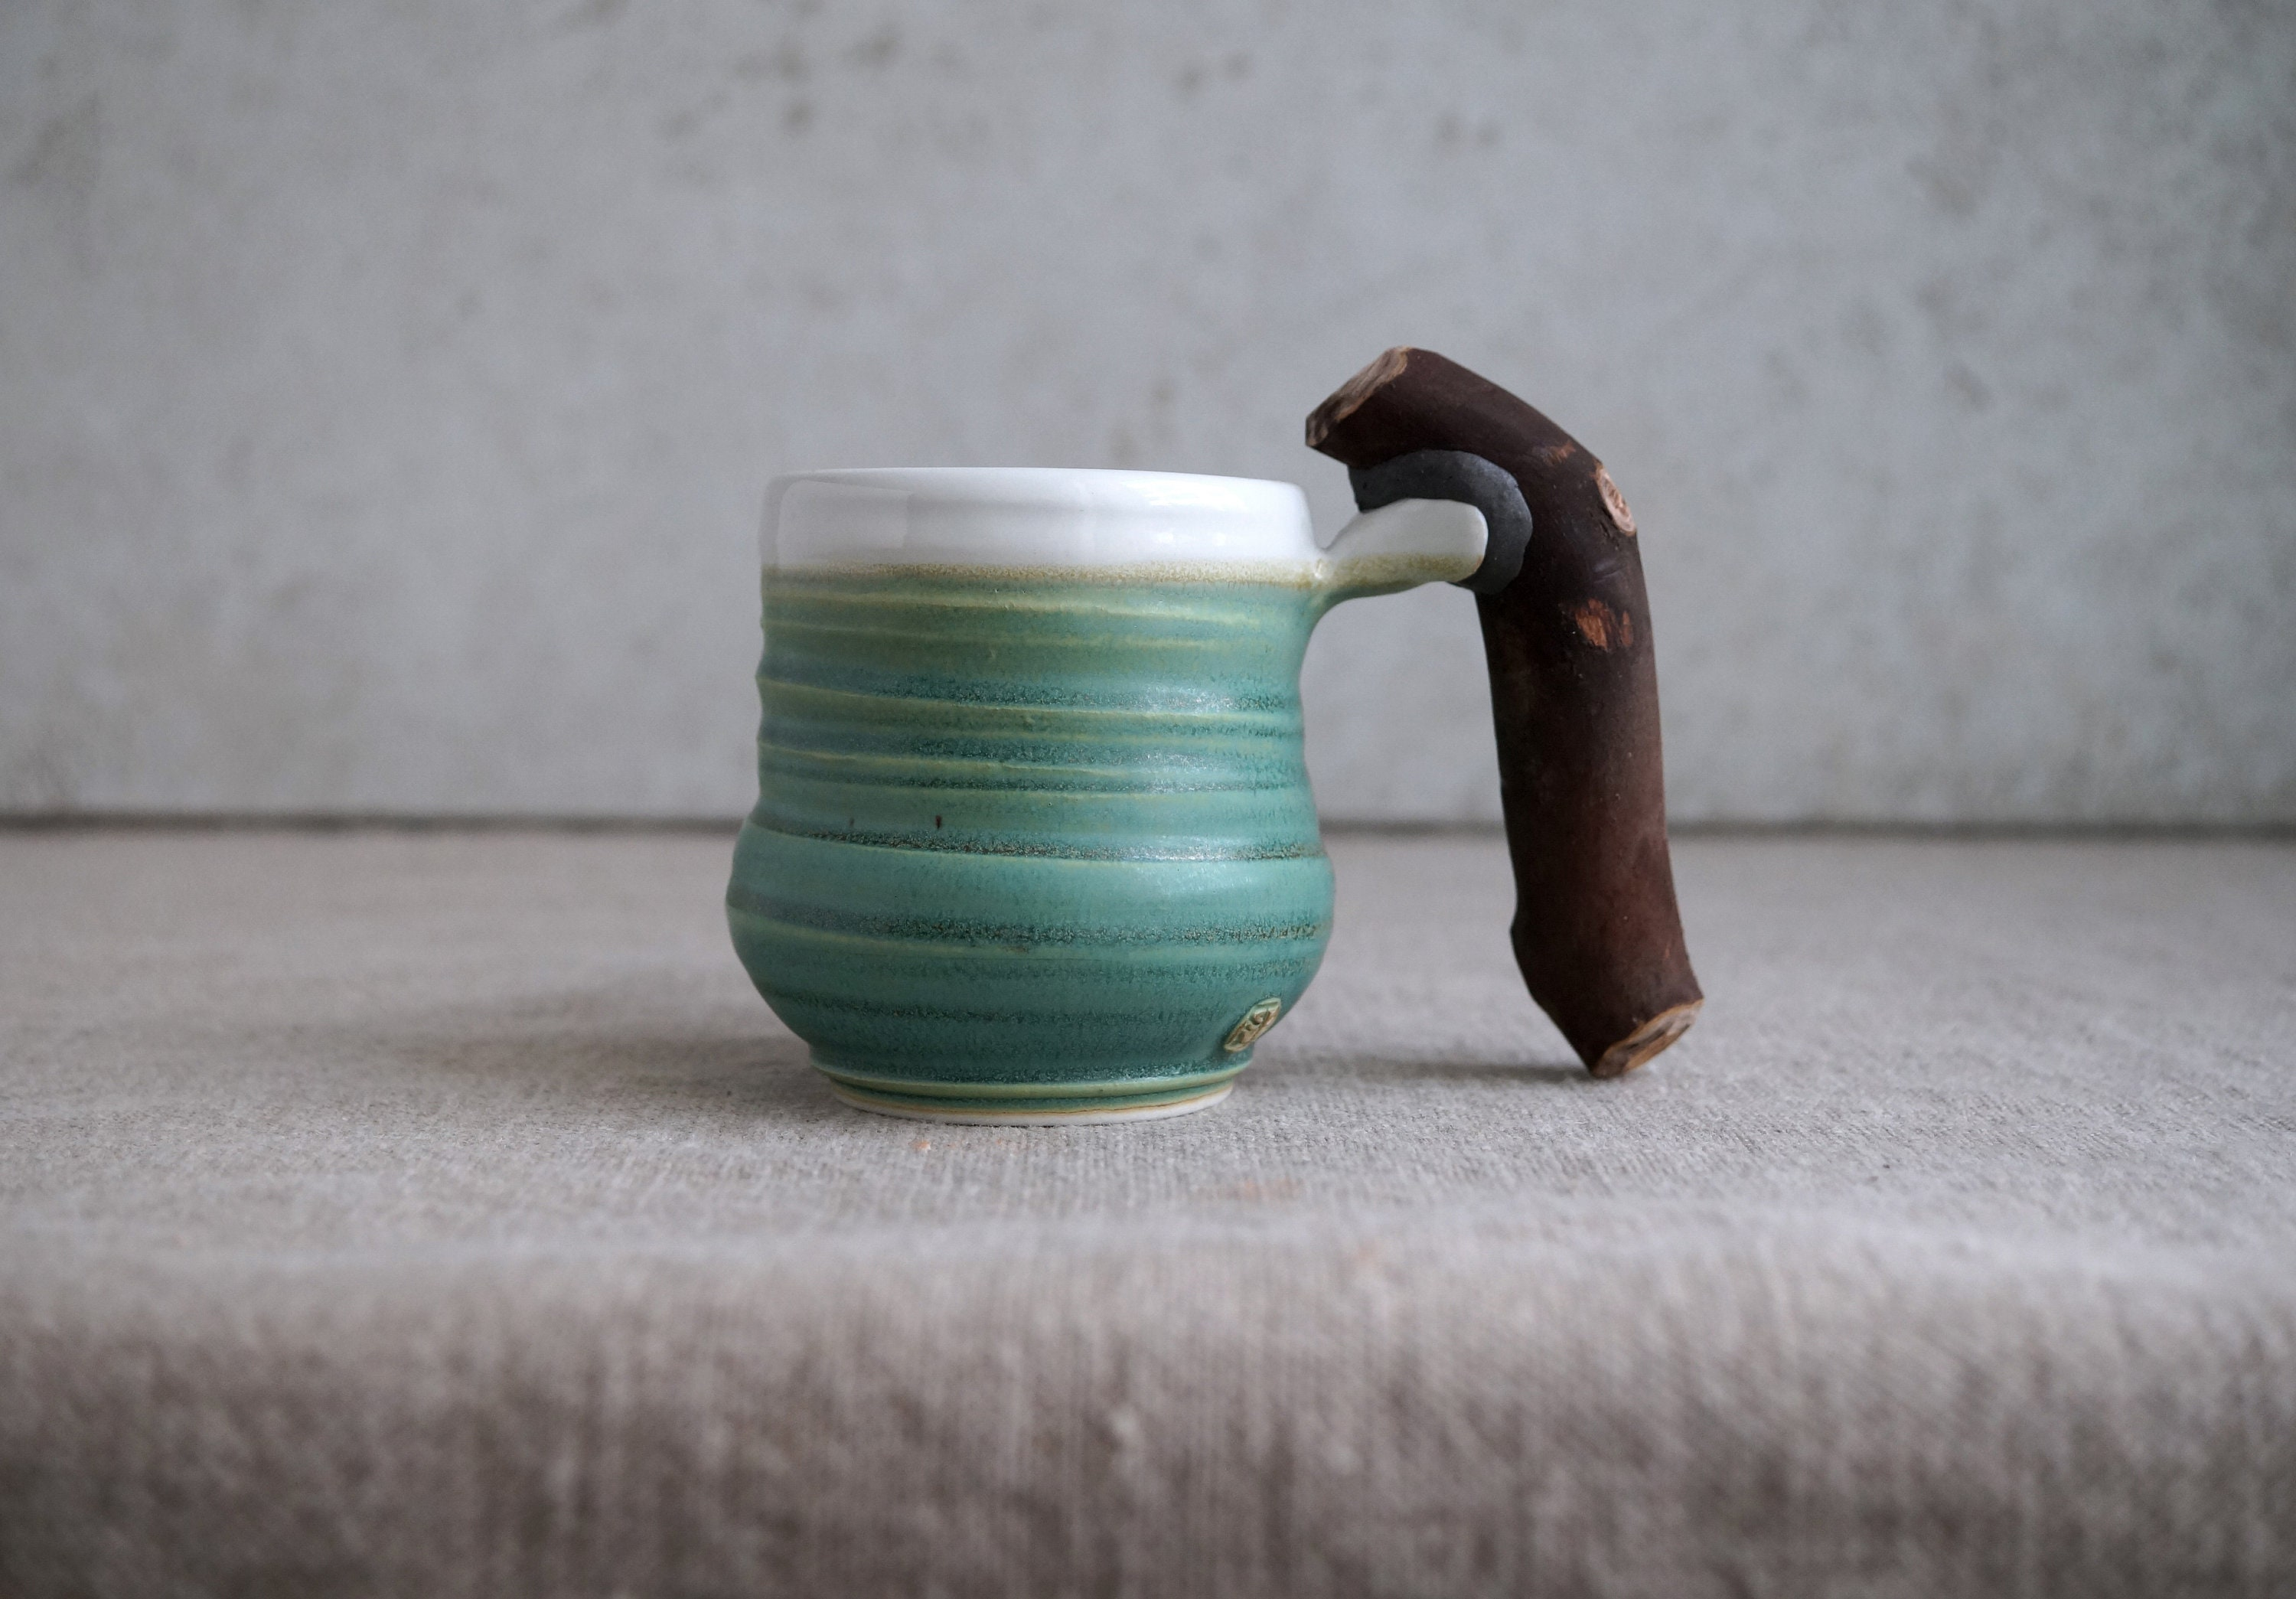 Handmade Ceramic Mug, Wooden Handle, Porcelain Clay, 8 oz, Patina